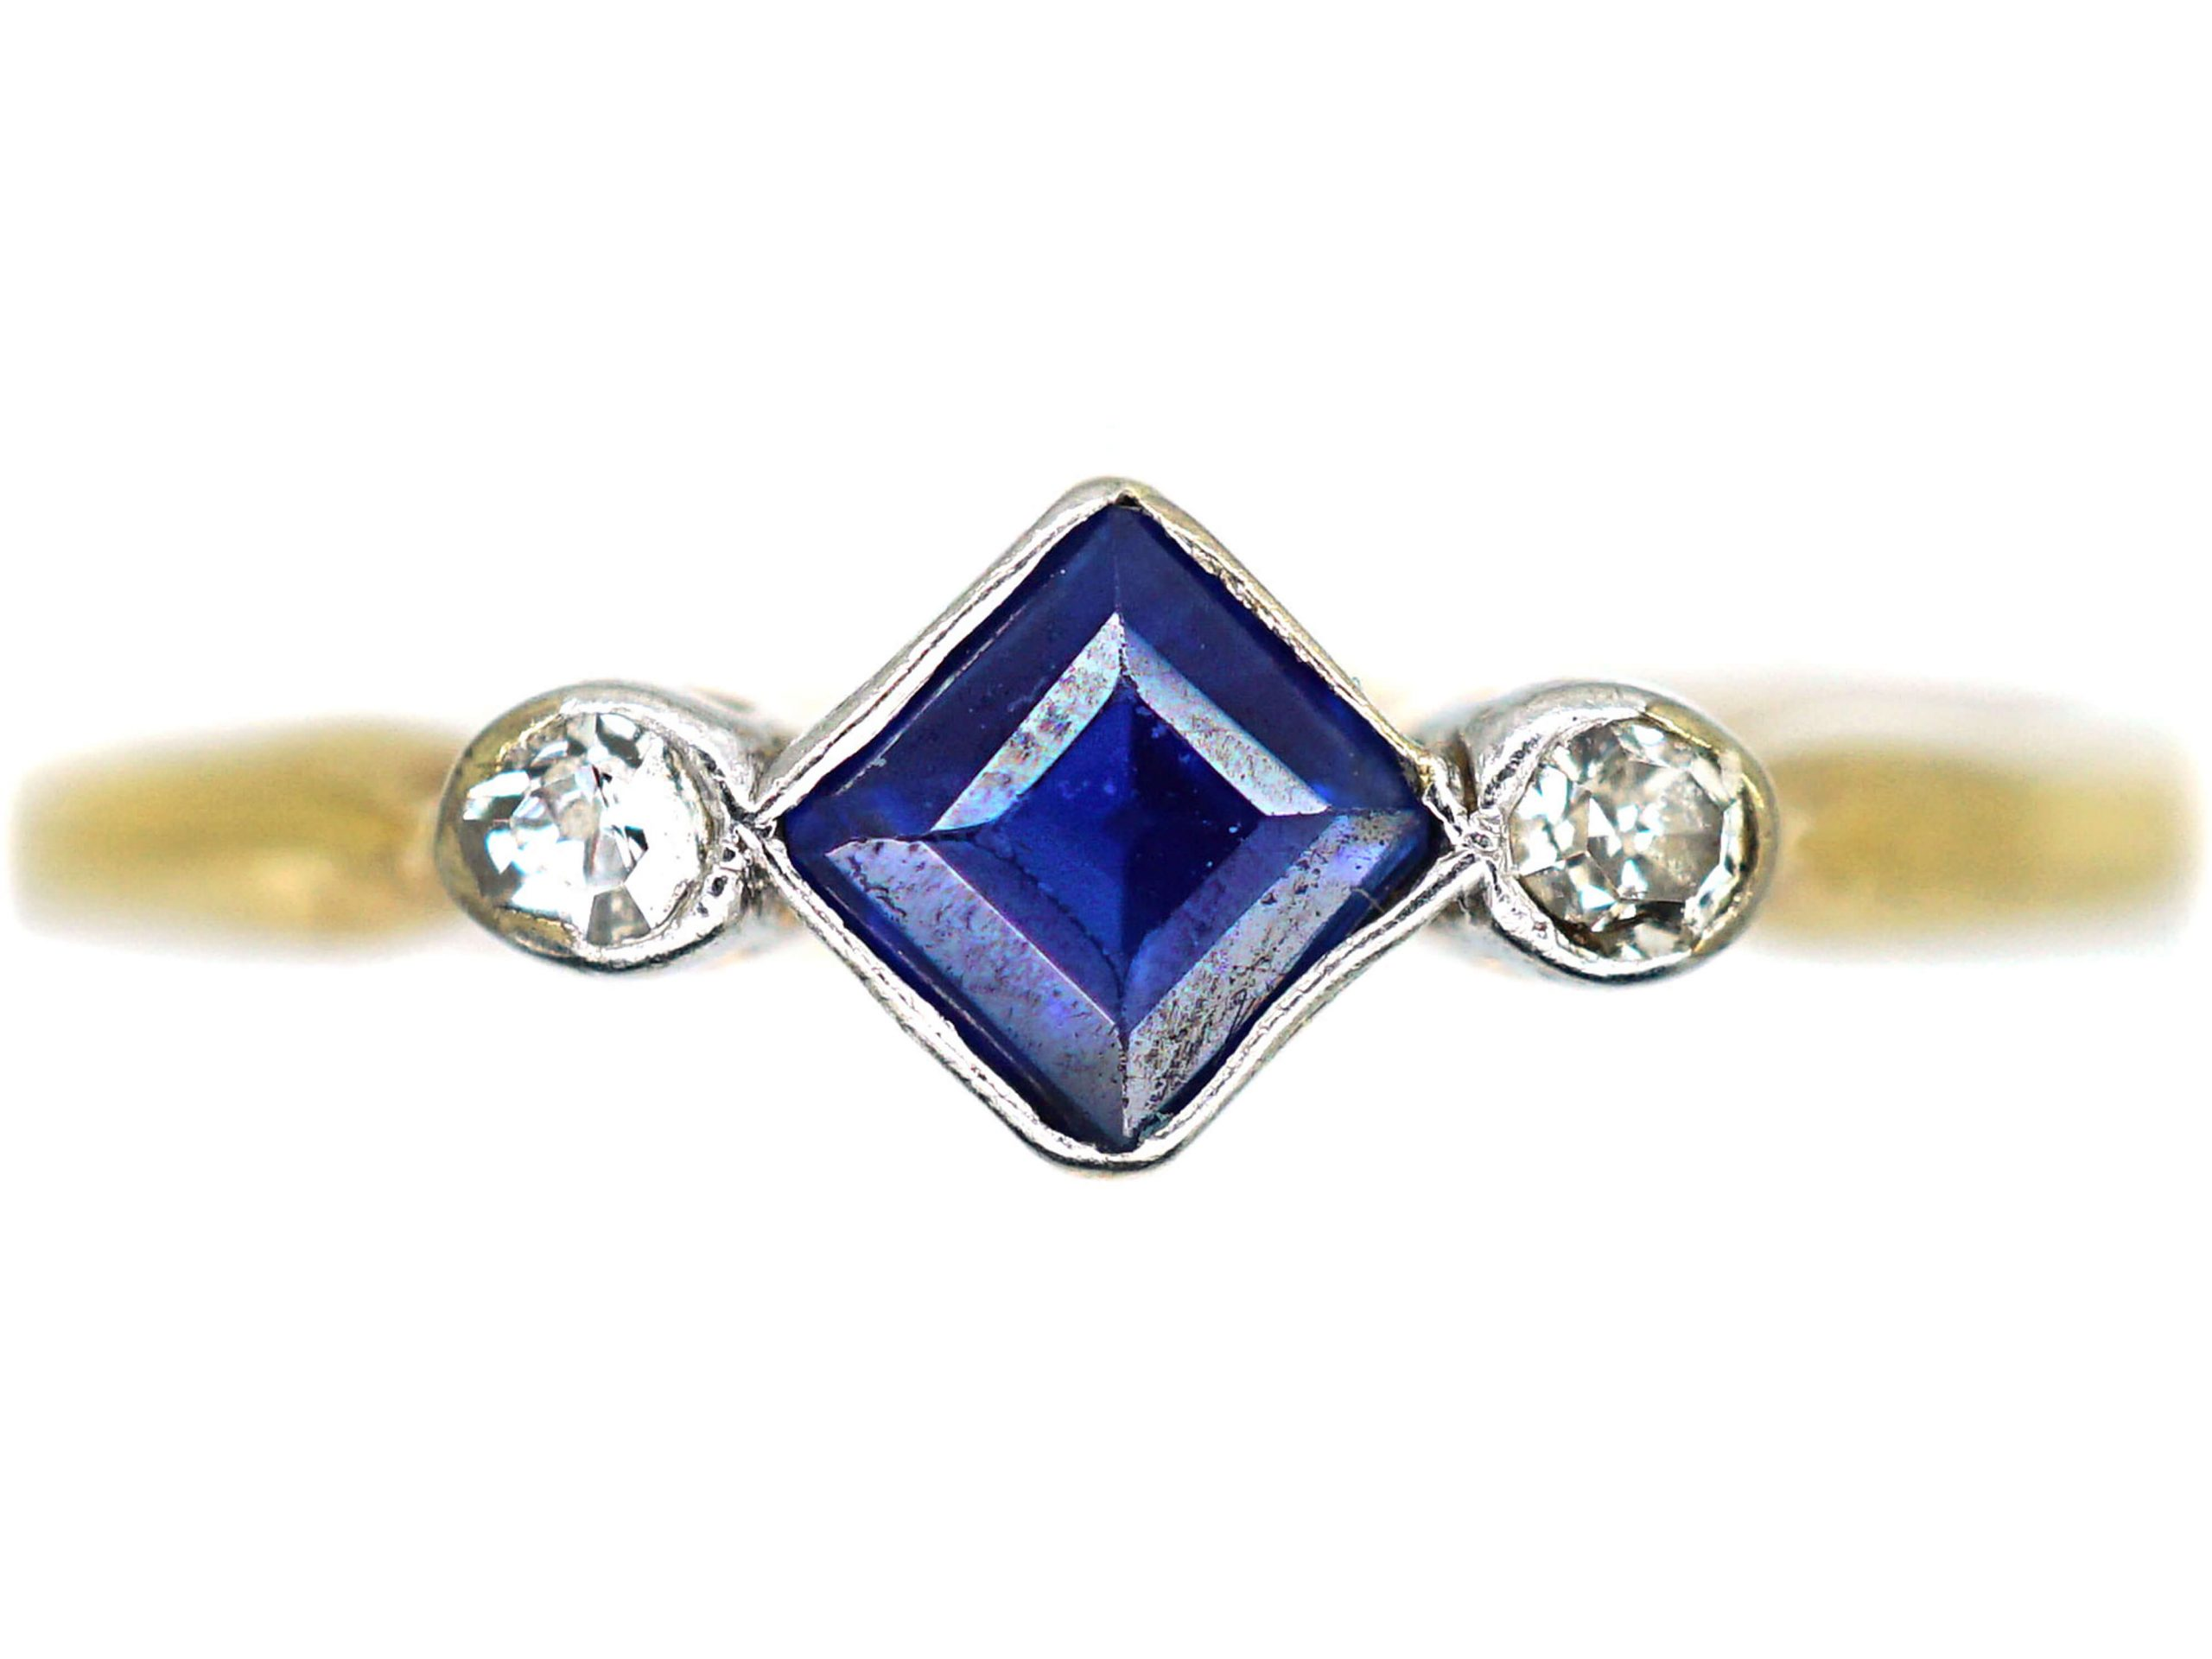 Art Deco 18ct Gold & Platinum, Sapphire & Diamond Ring